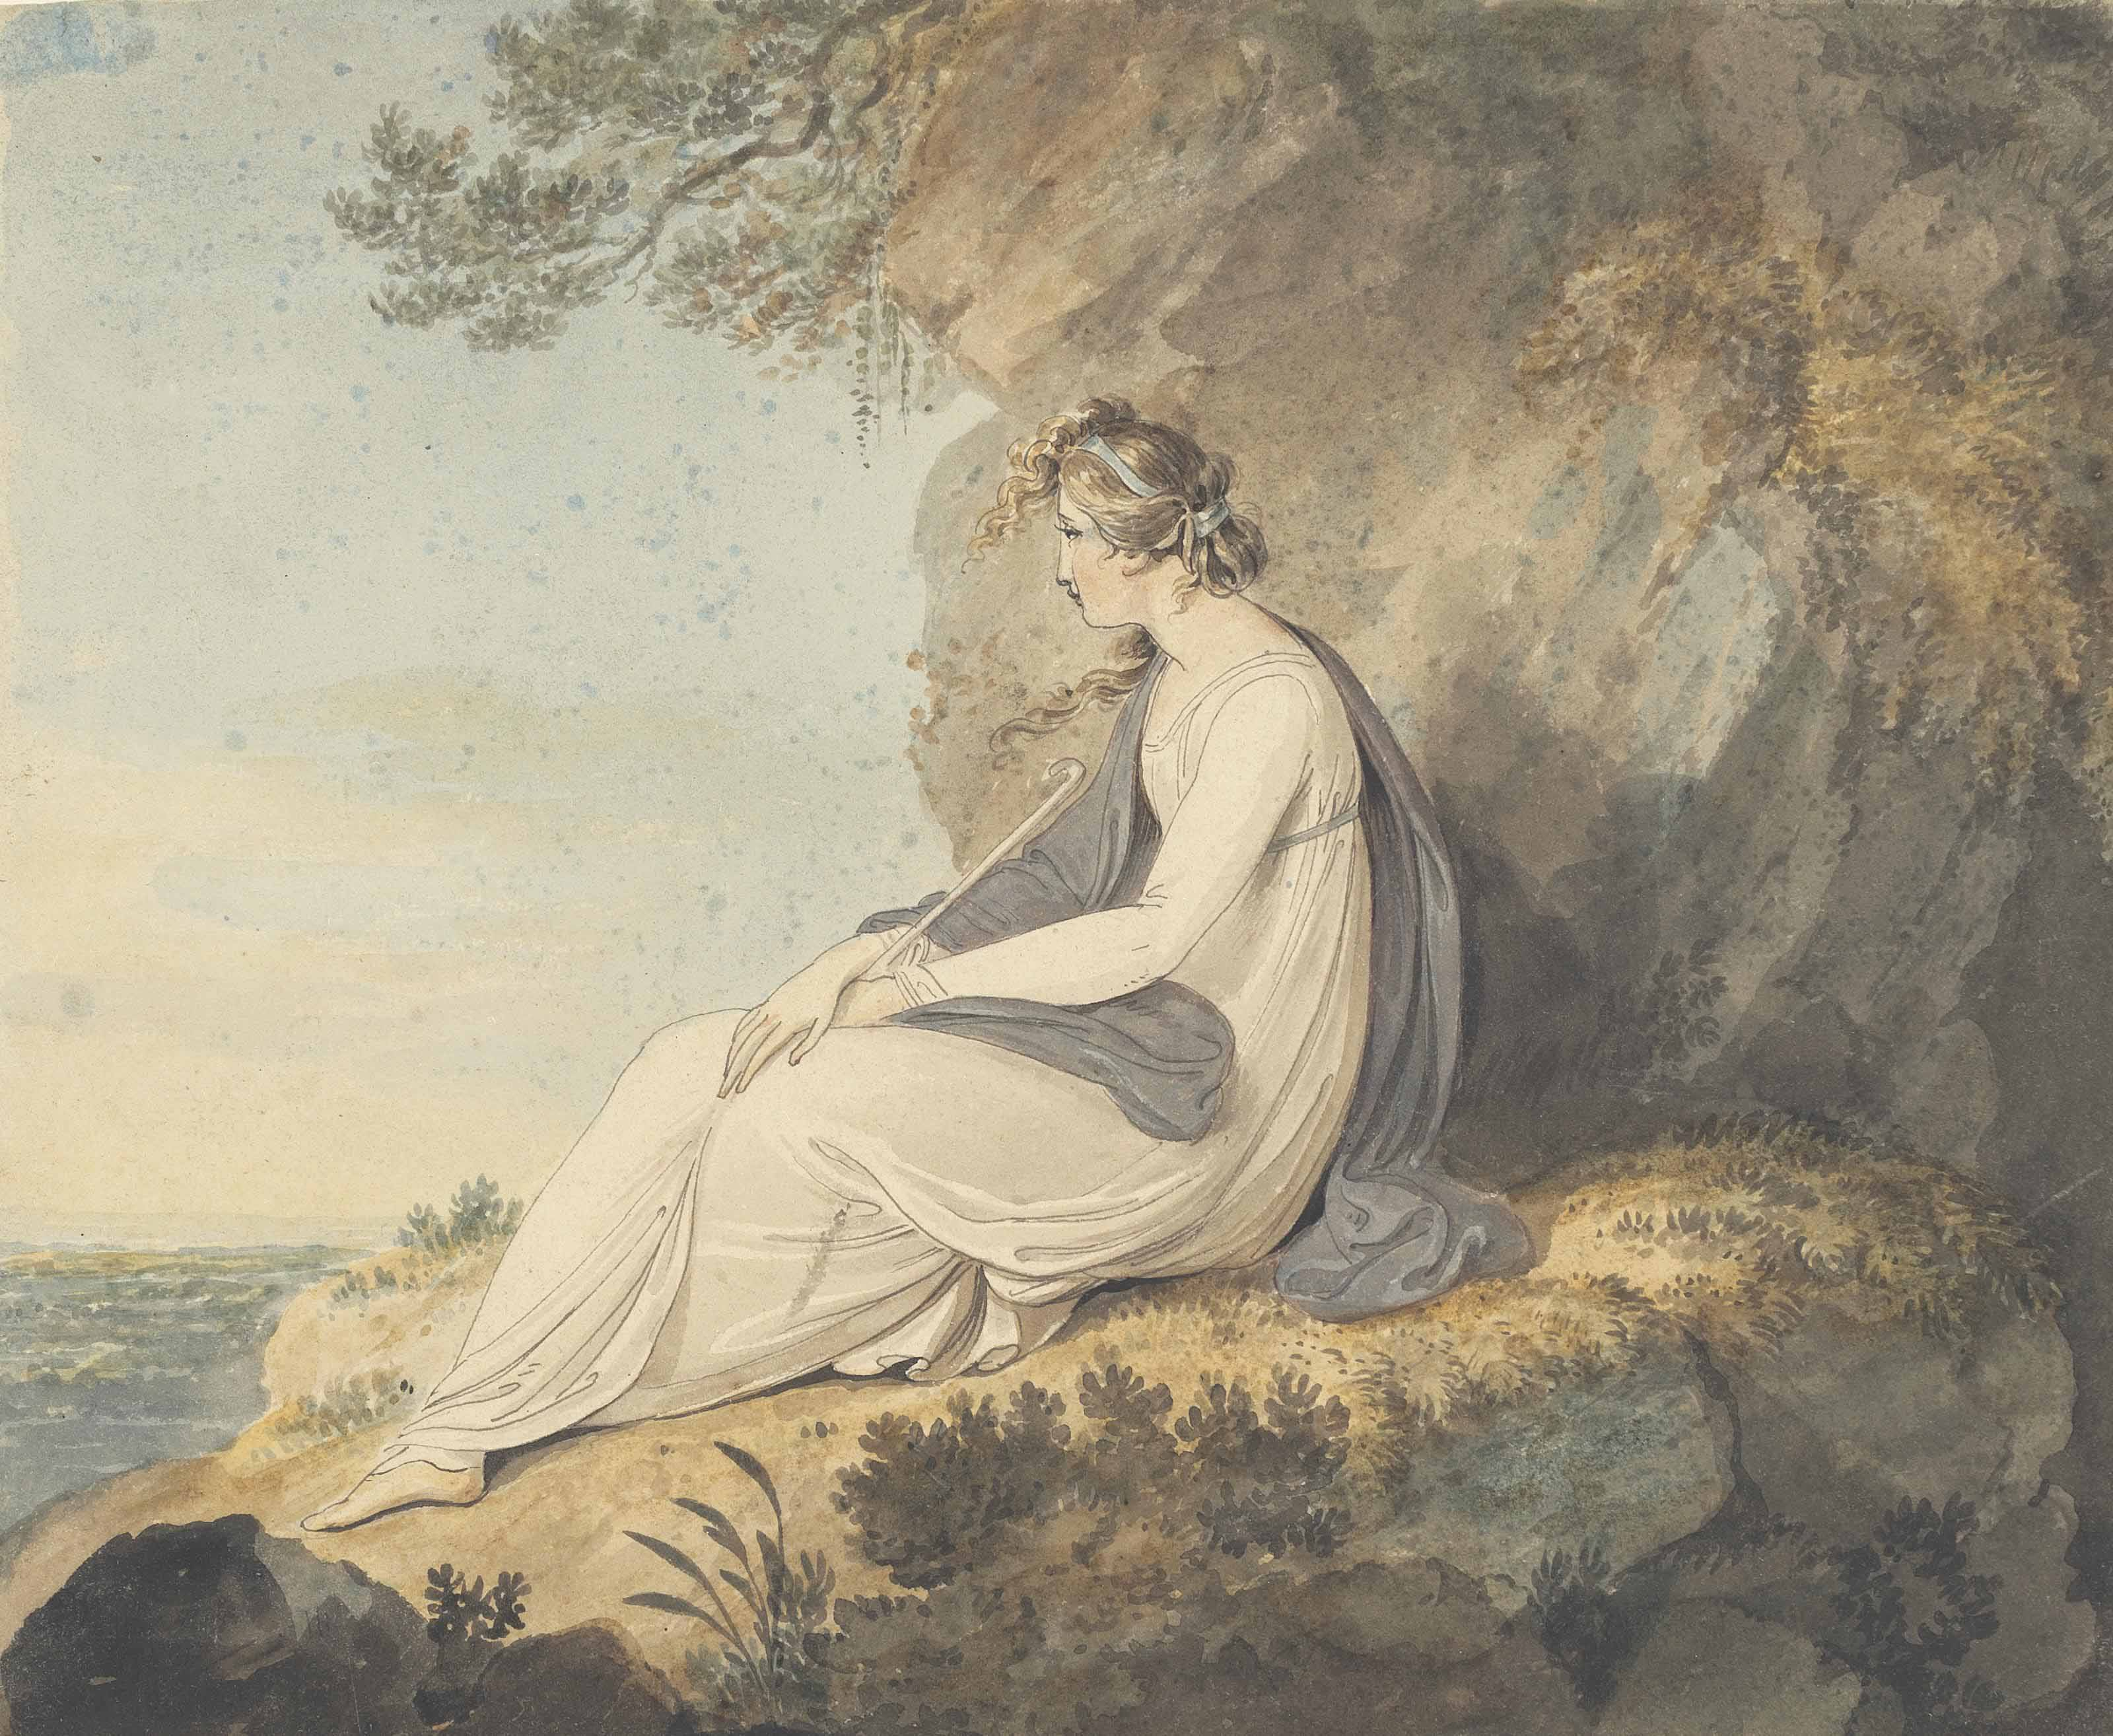 Attributed to Johann Martin Me